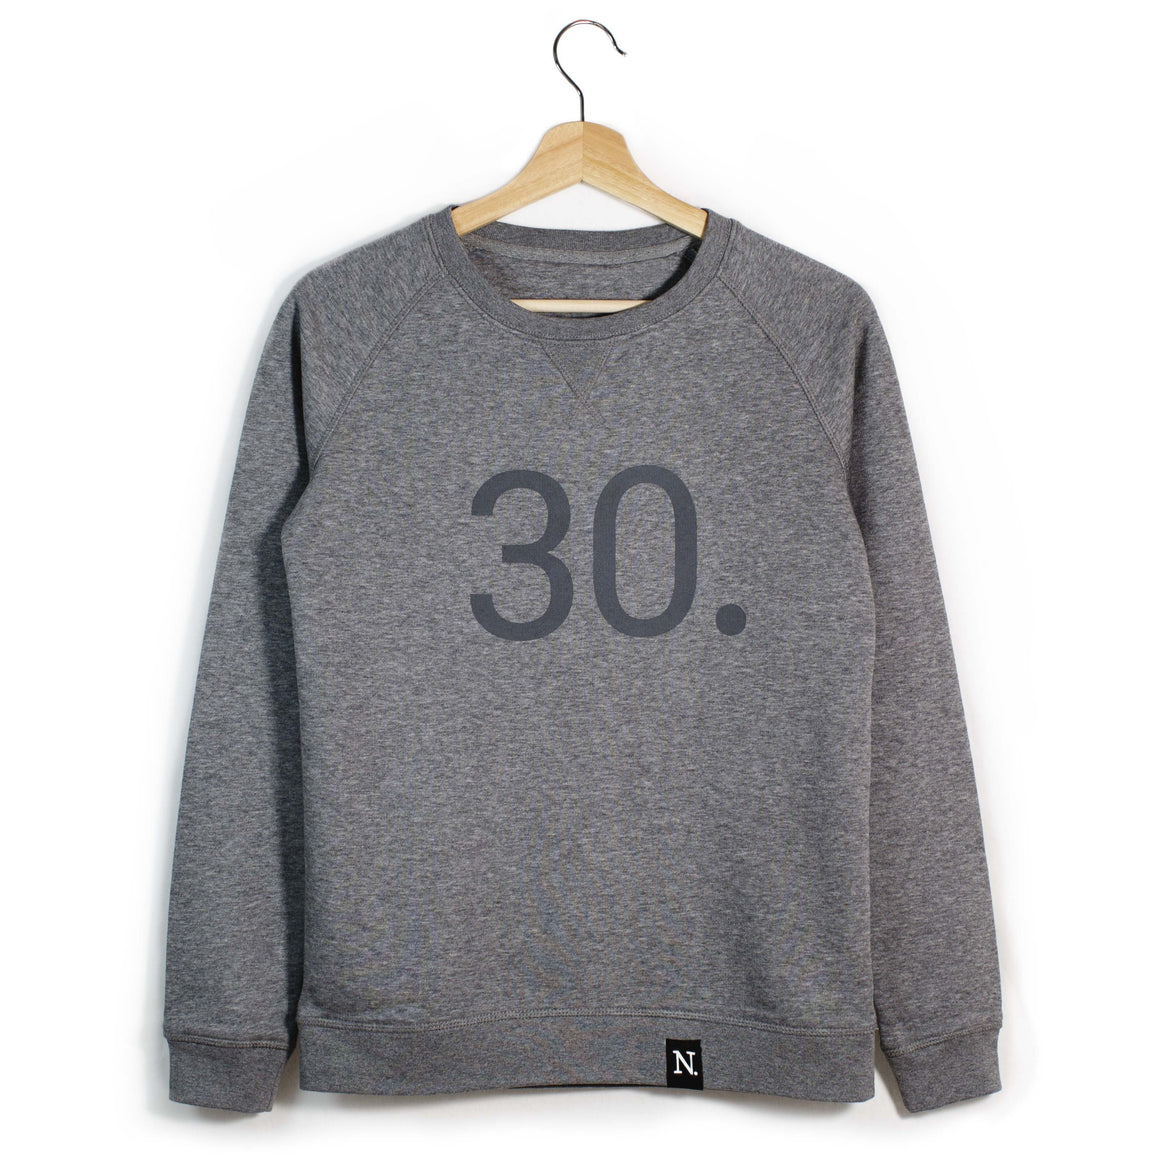 The Number 30 dark grey sweatshirt front